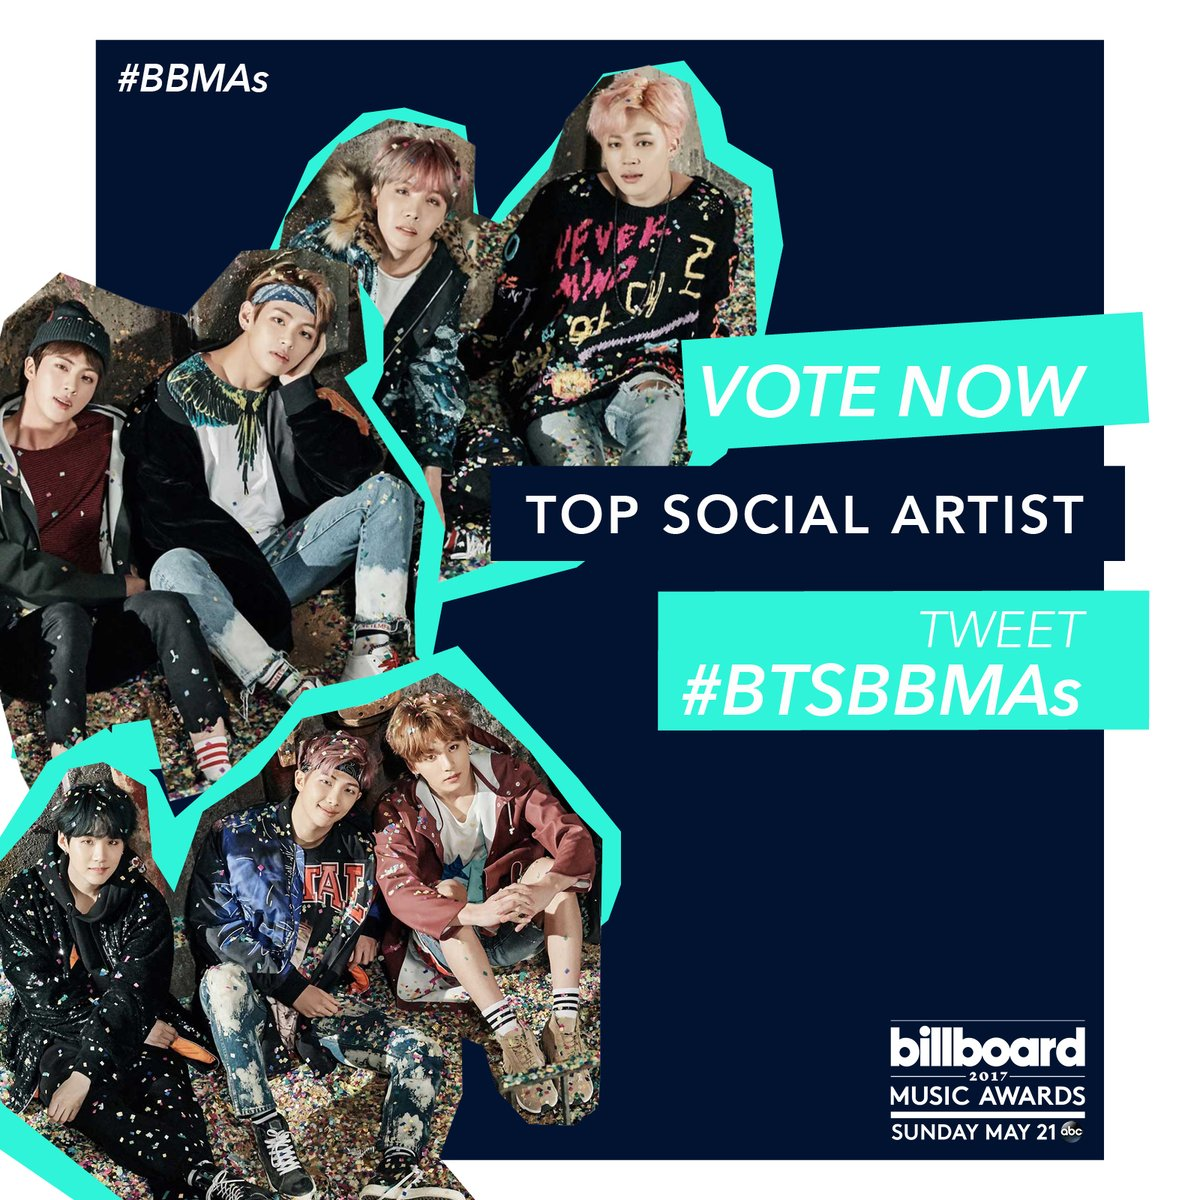 bts top social artist billboard